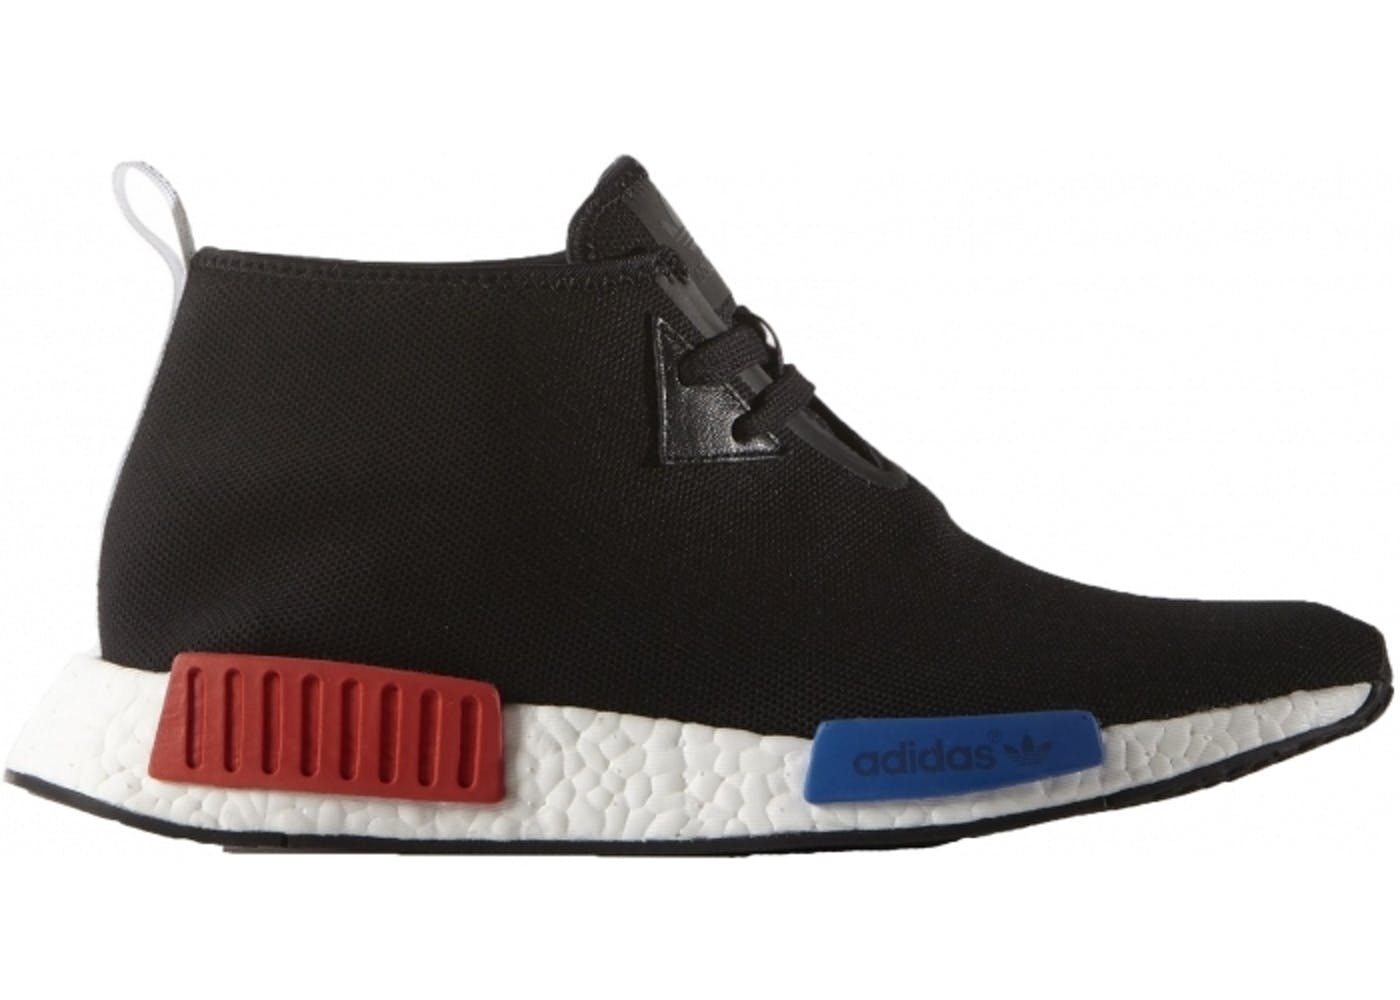 Adidas x Porter Japan NMD C1 Chukka Black Blue US shoe size 7